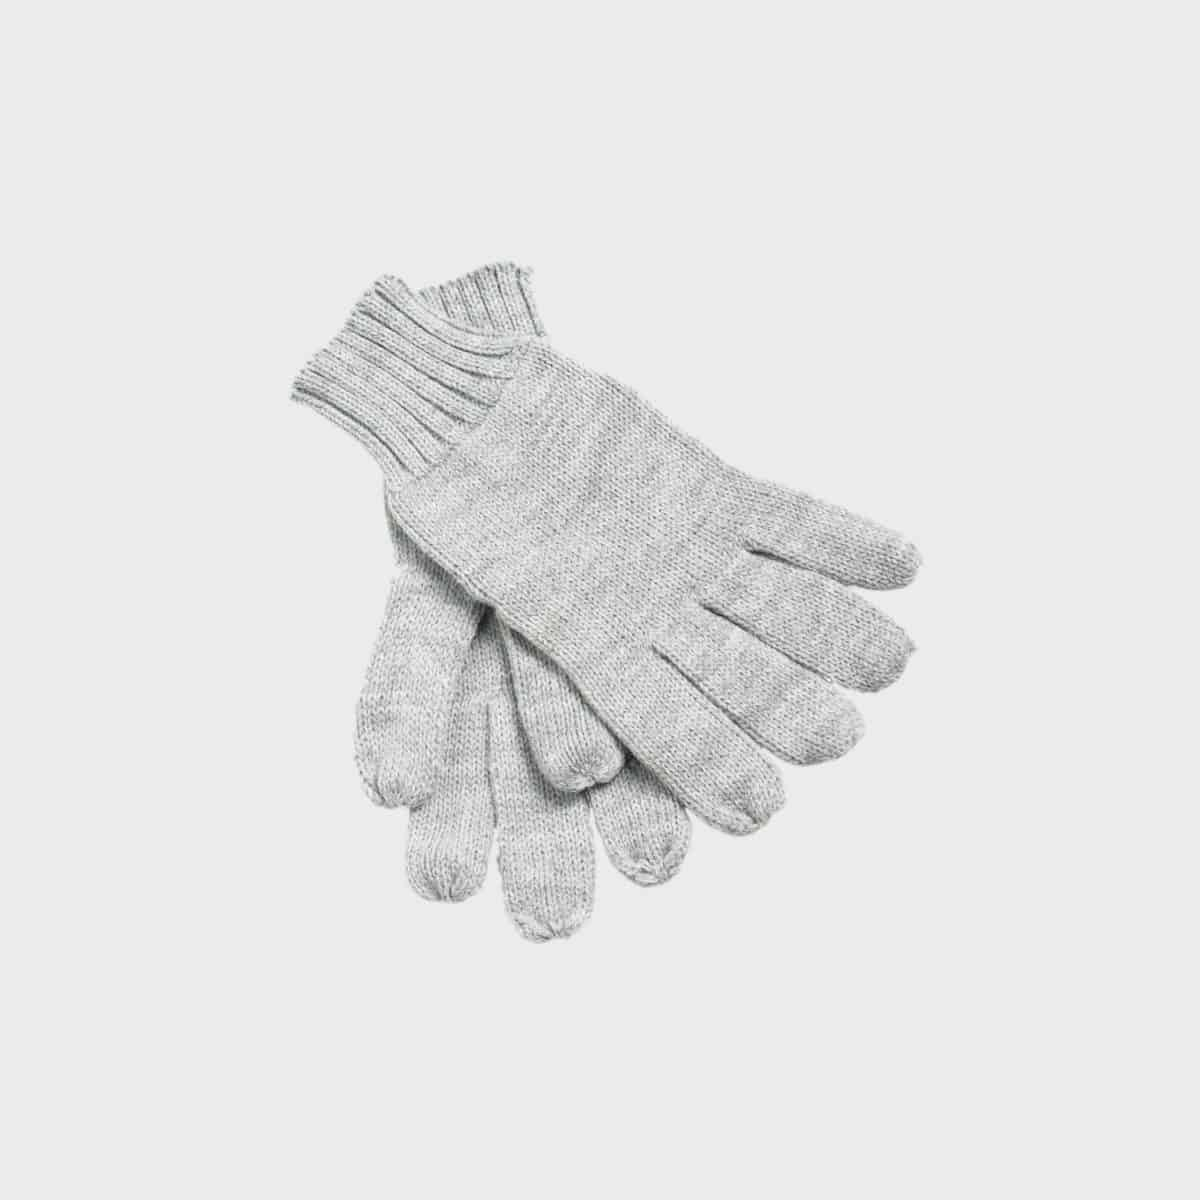 handschuhe-knitted-gloves-lightgrey-kaufen-besticken_stickmanufaktur